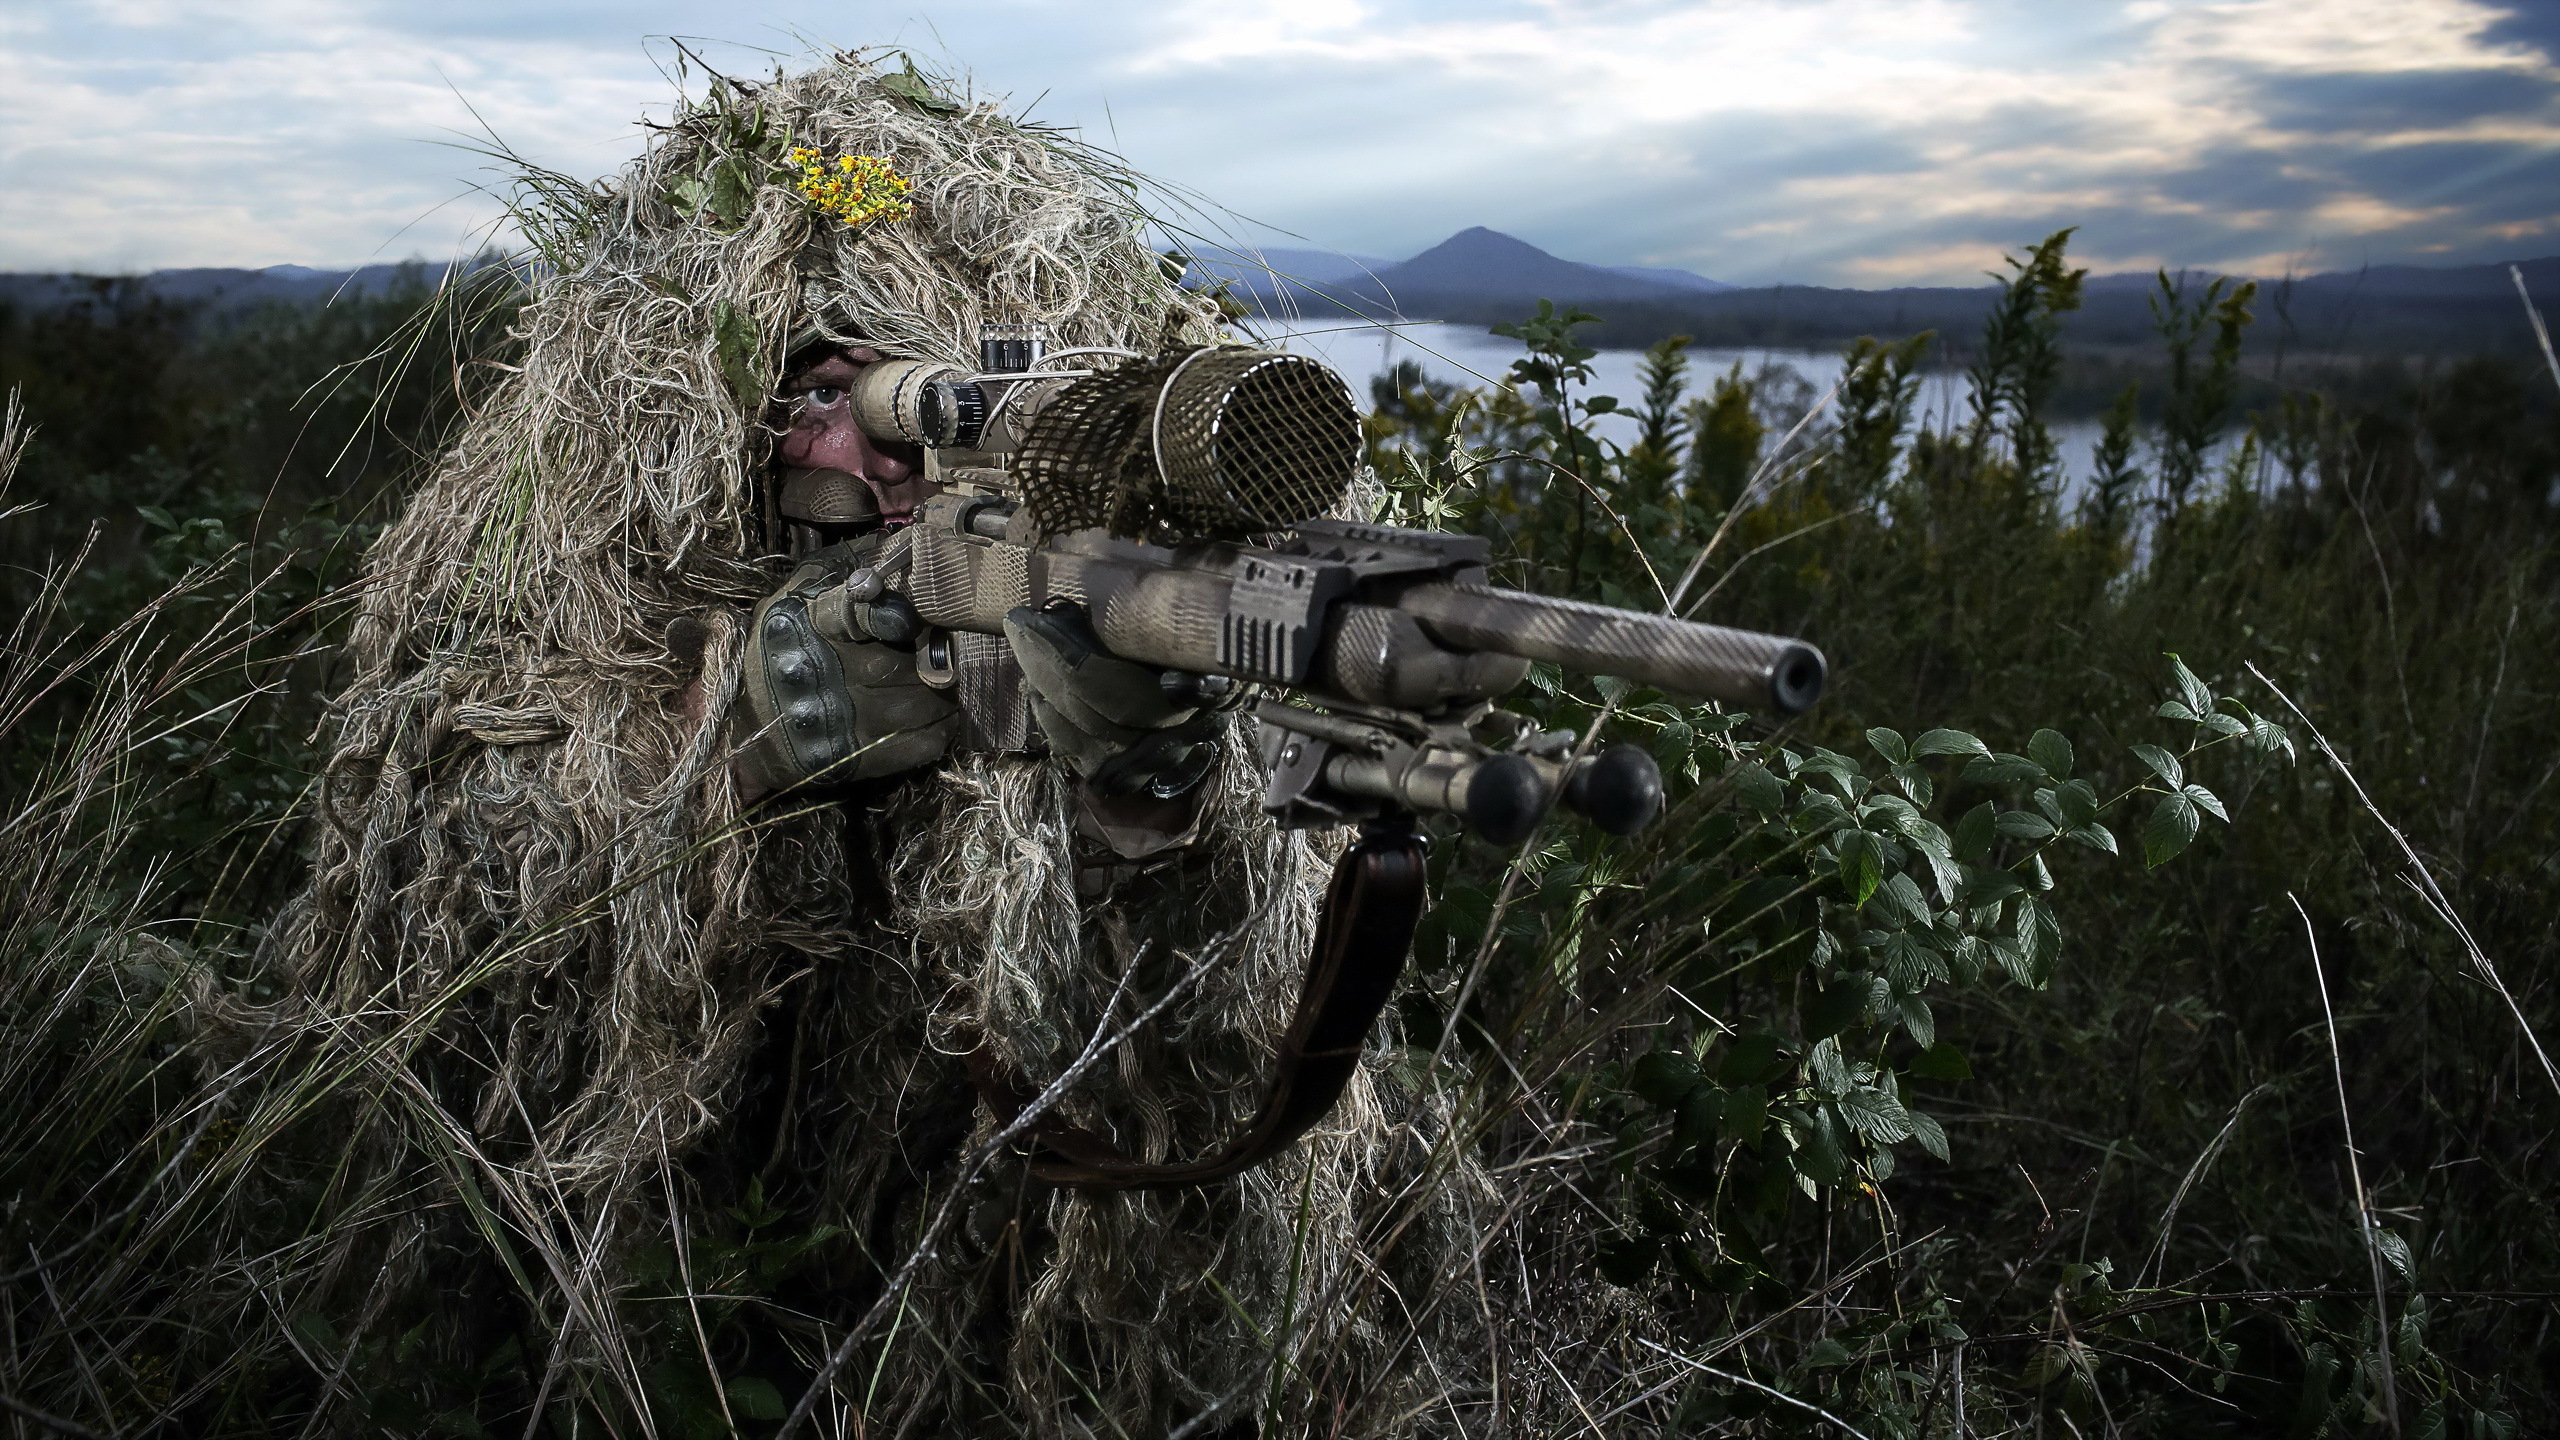 women army sniper wallpaper - photo #36